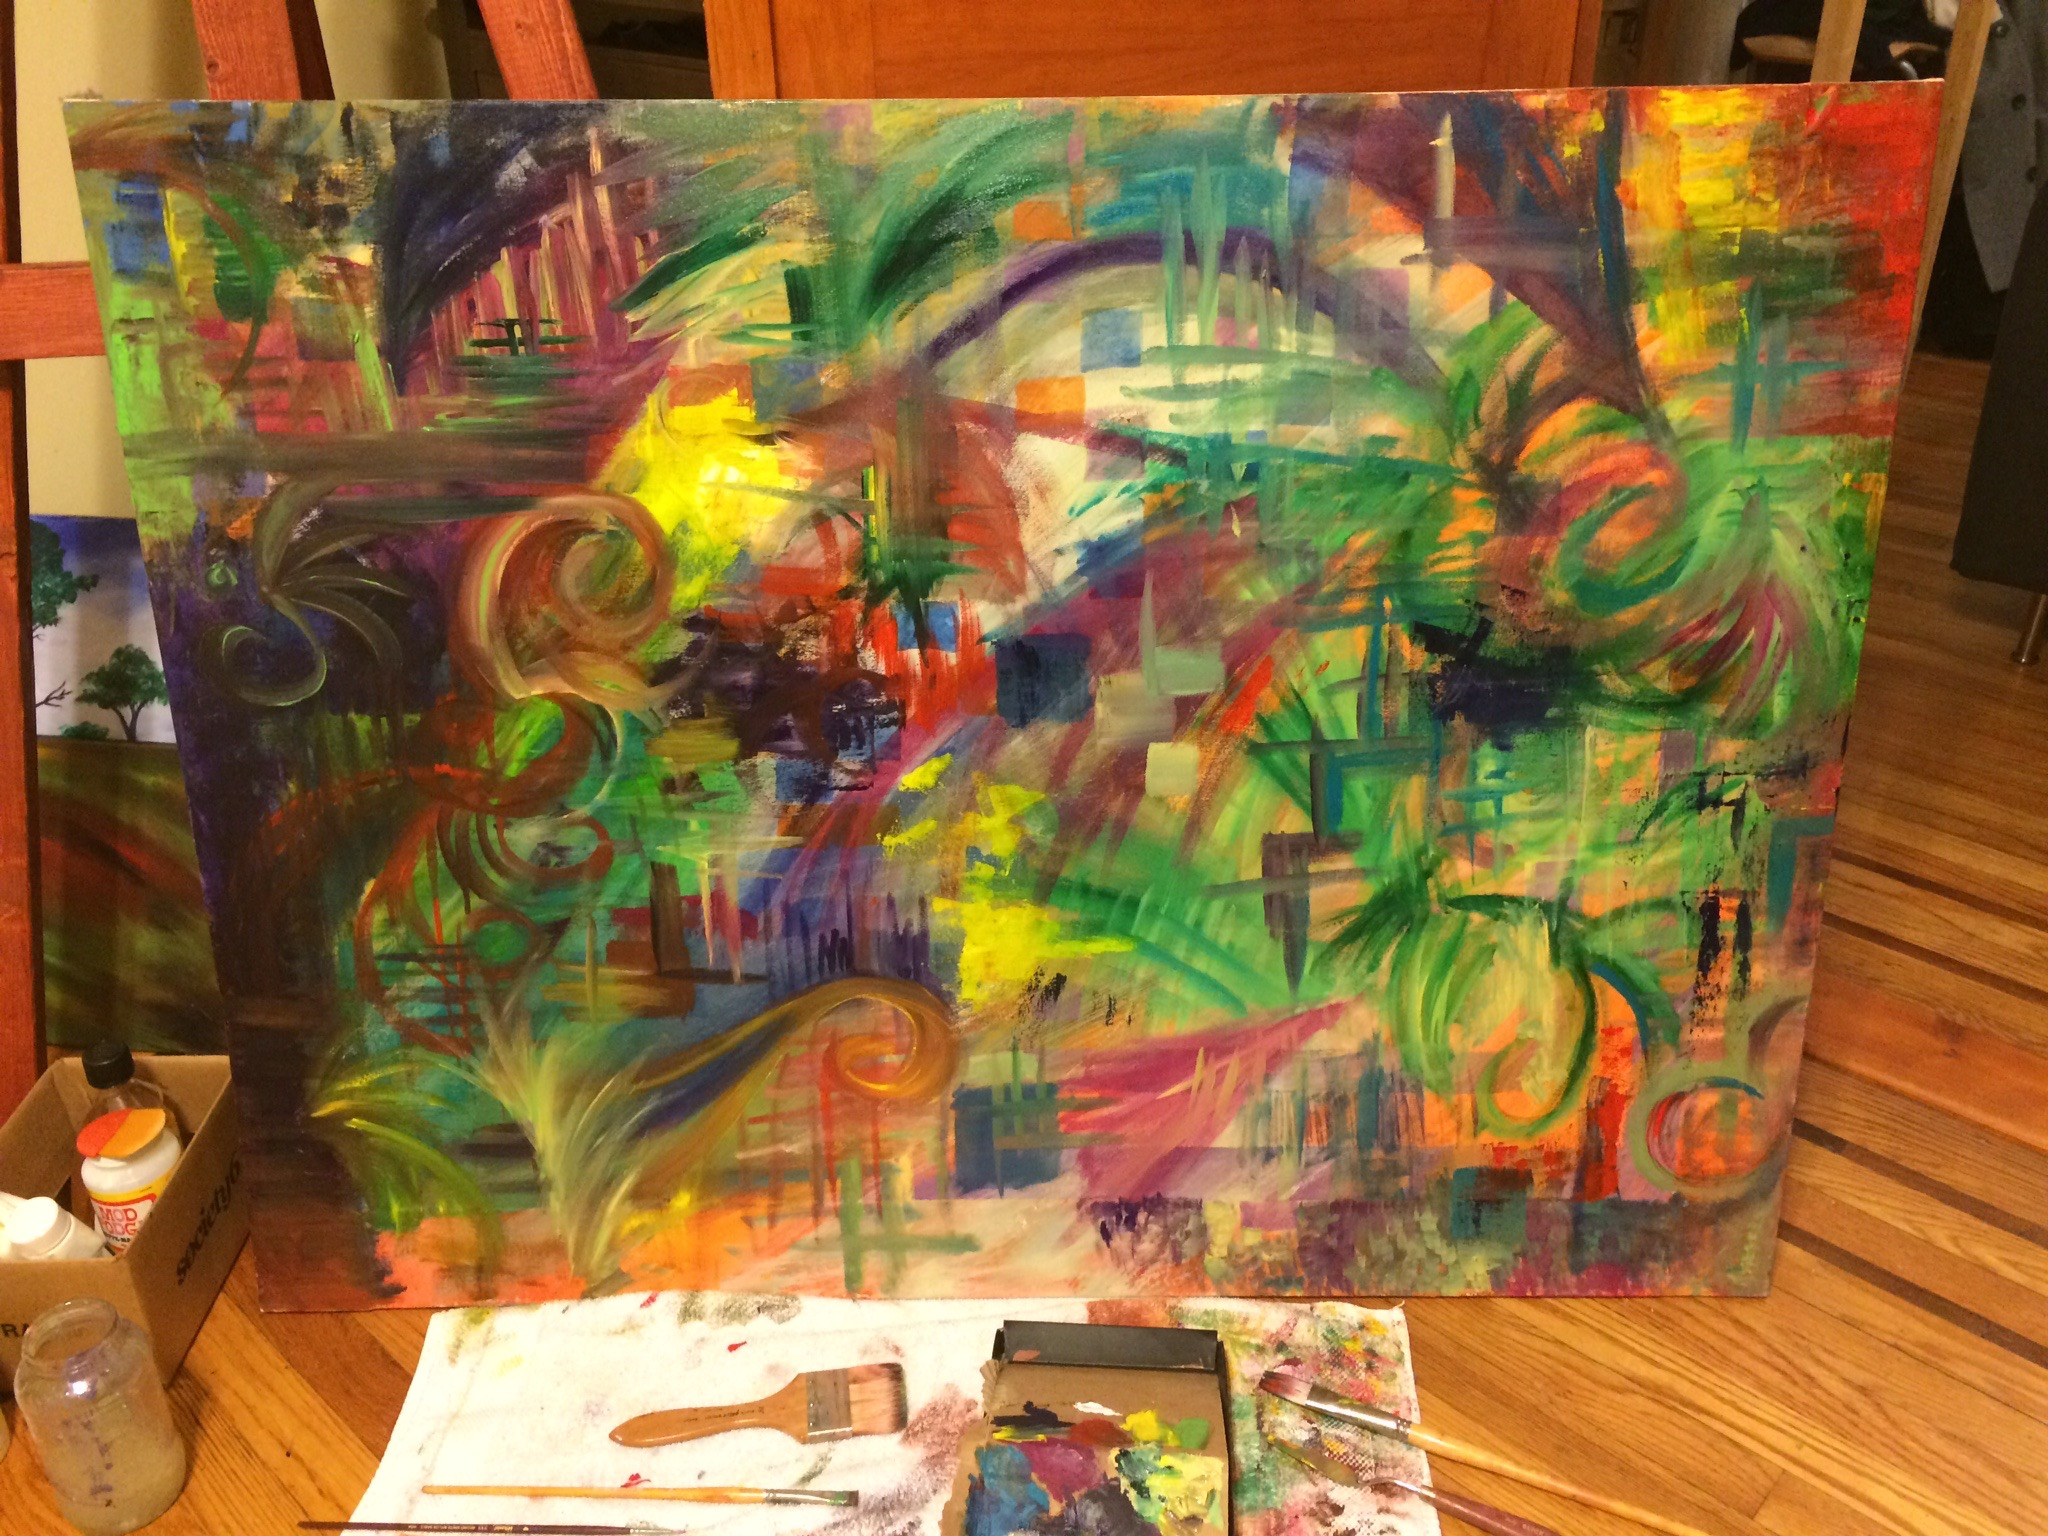 Queens, New York | 02.08.15 | Oil paining collaboration with Stella Gold